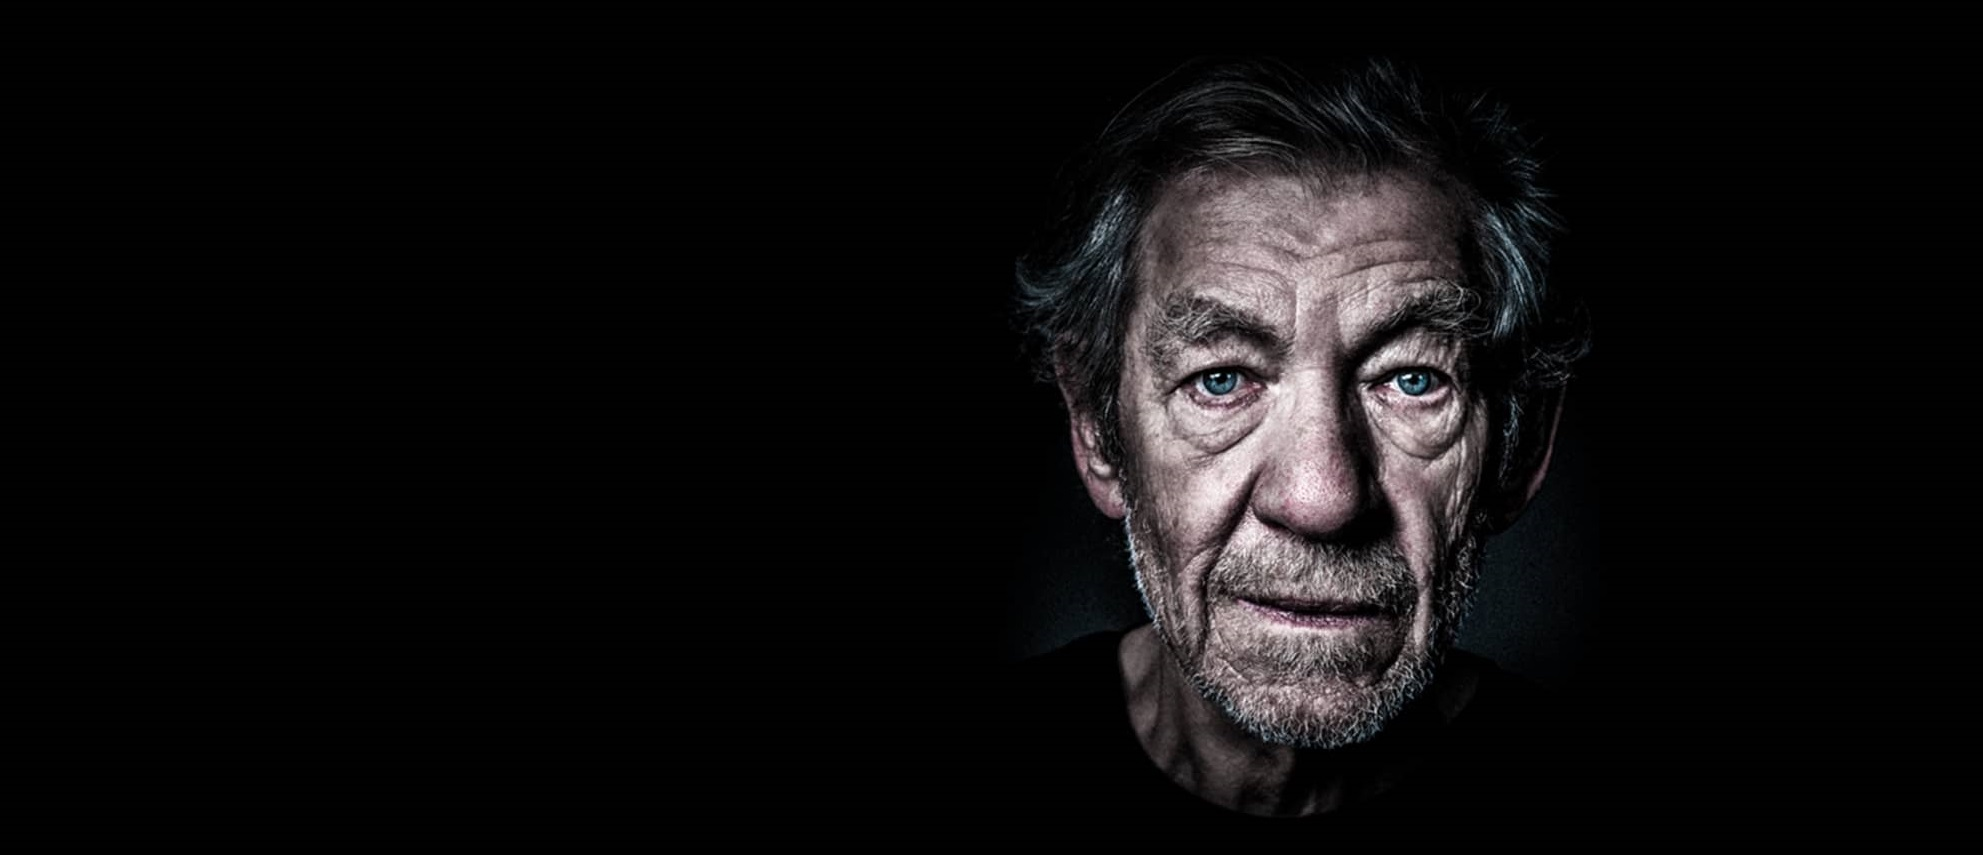 Ian McKellen as King Lear on screen at the Manning Entertainment Centre